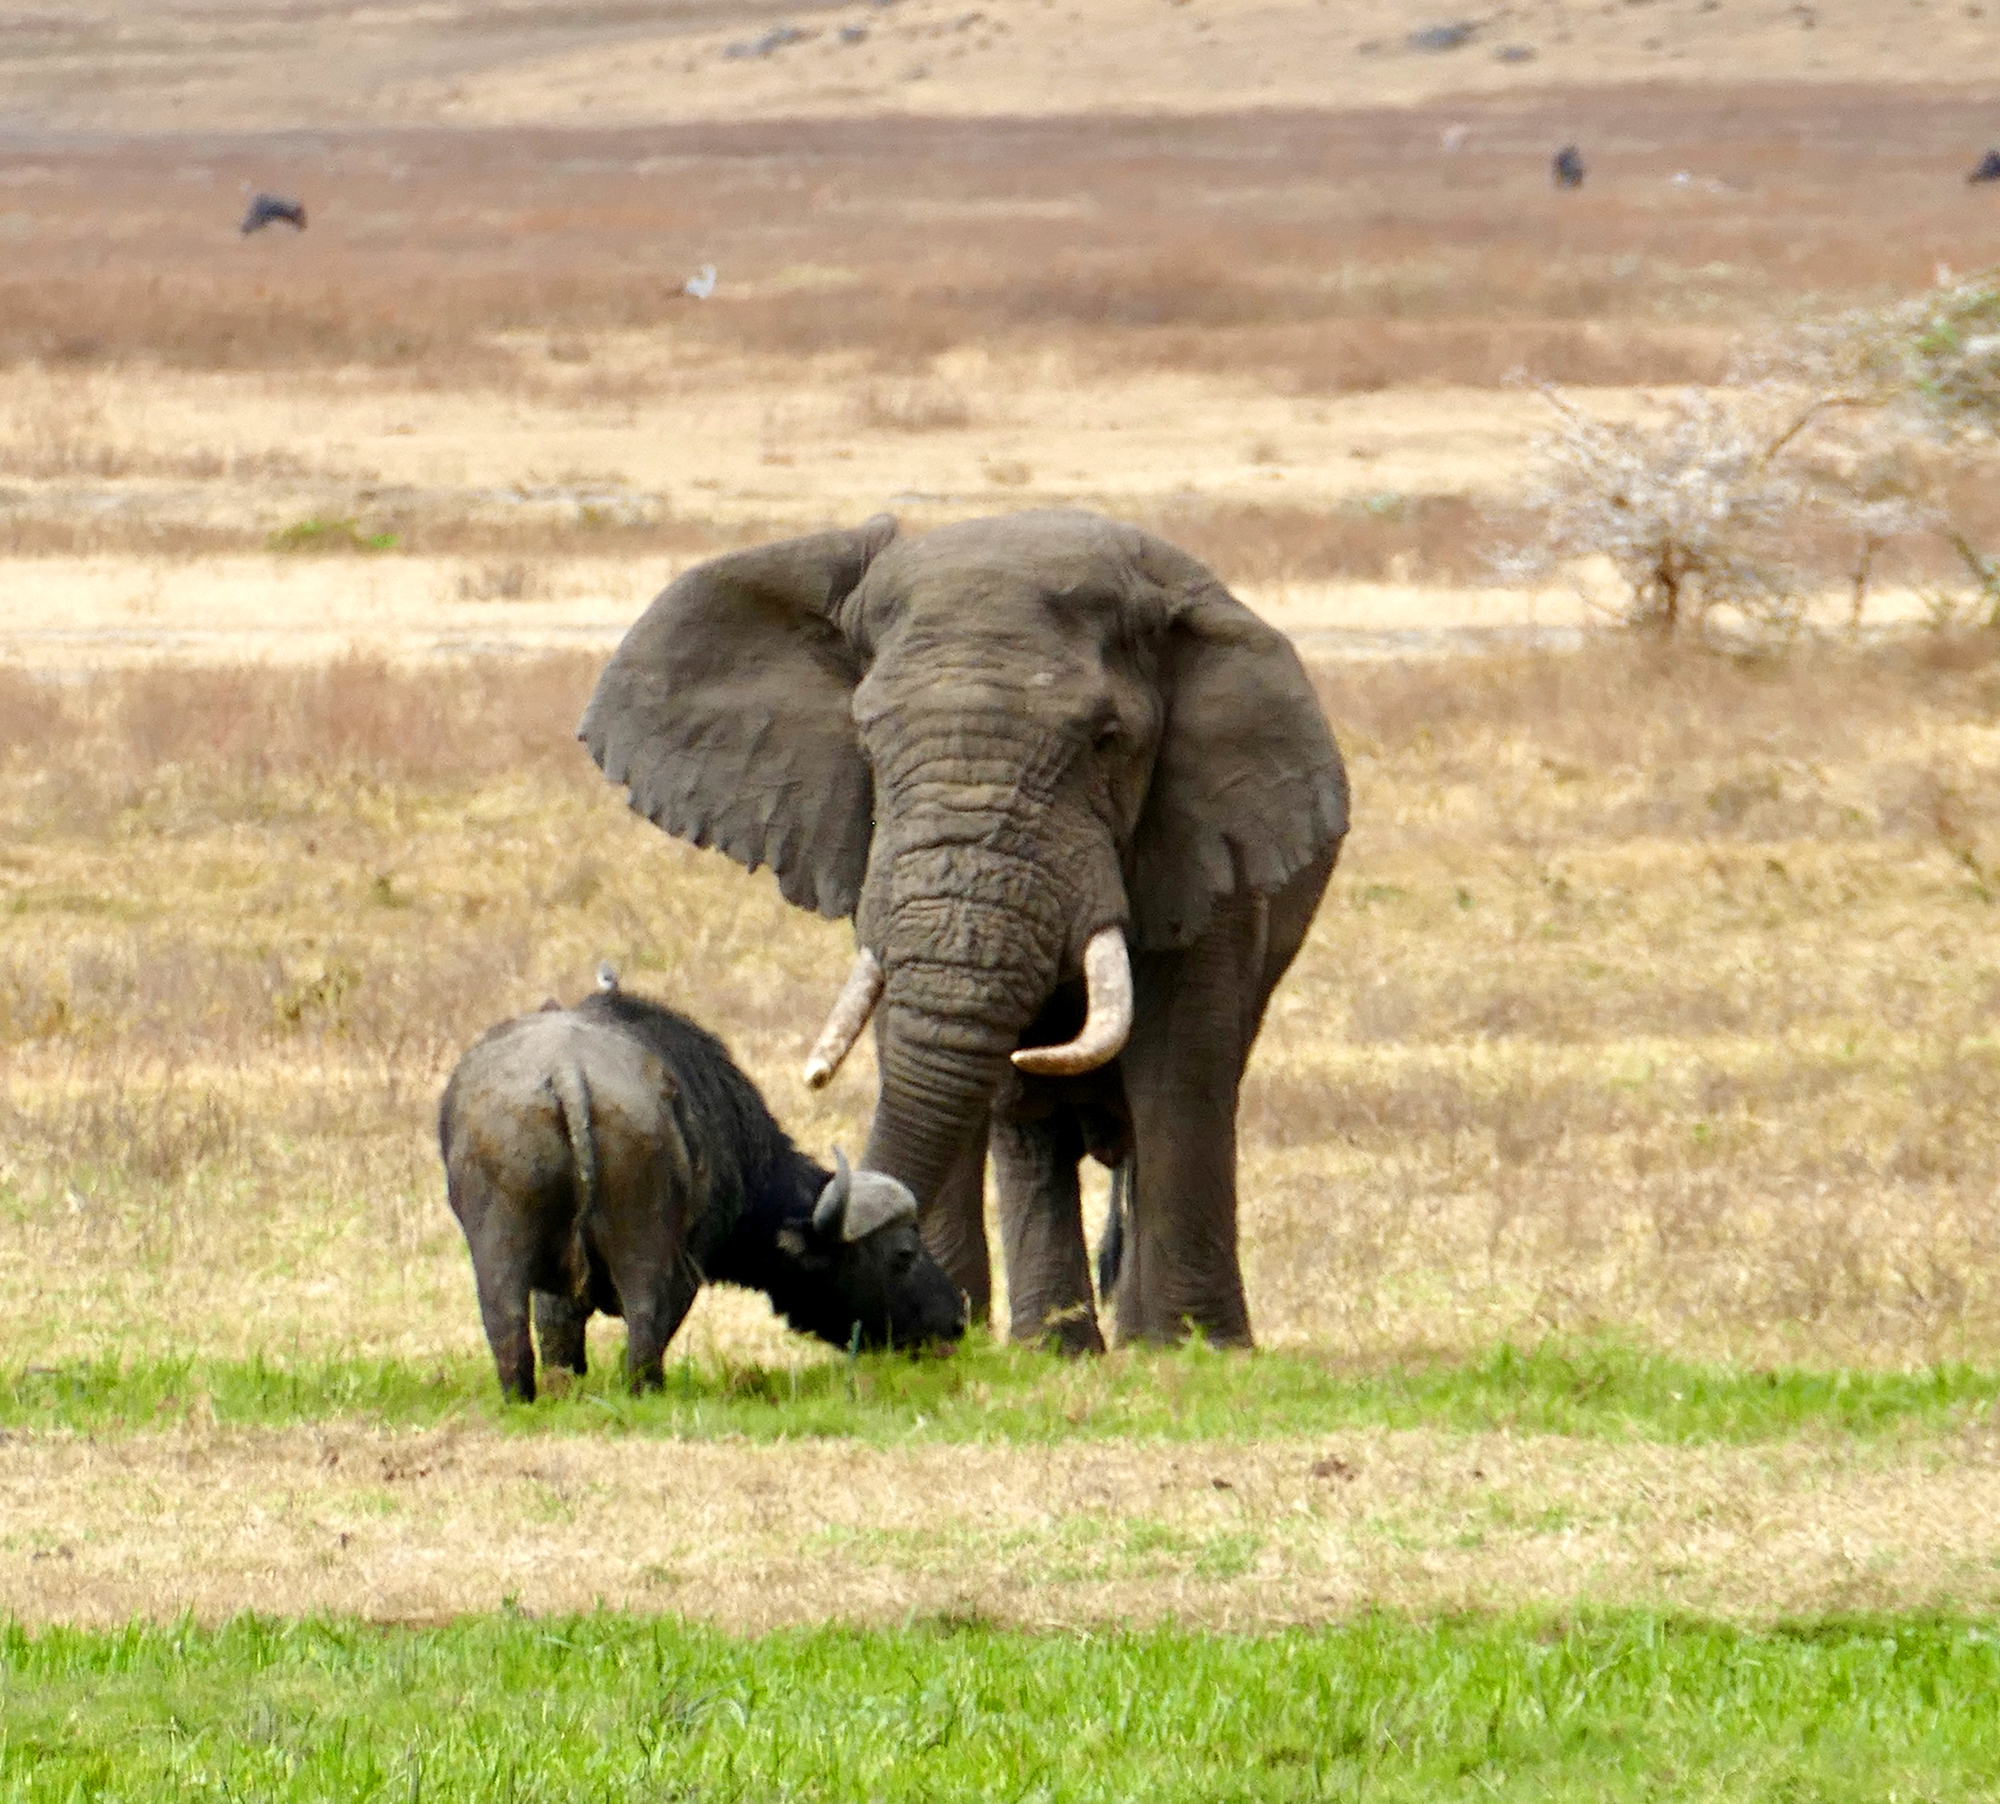 An elephant and cape buffalo in a field